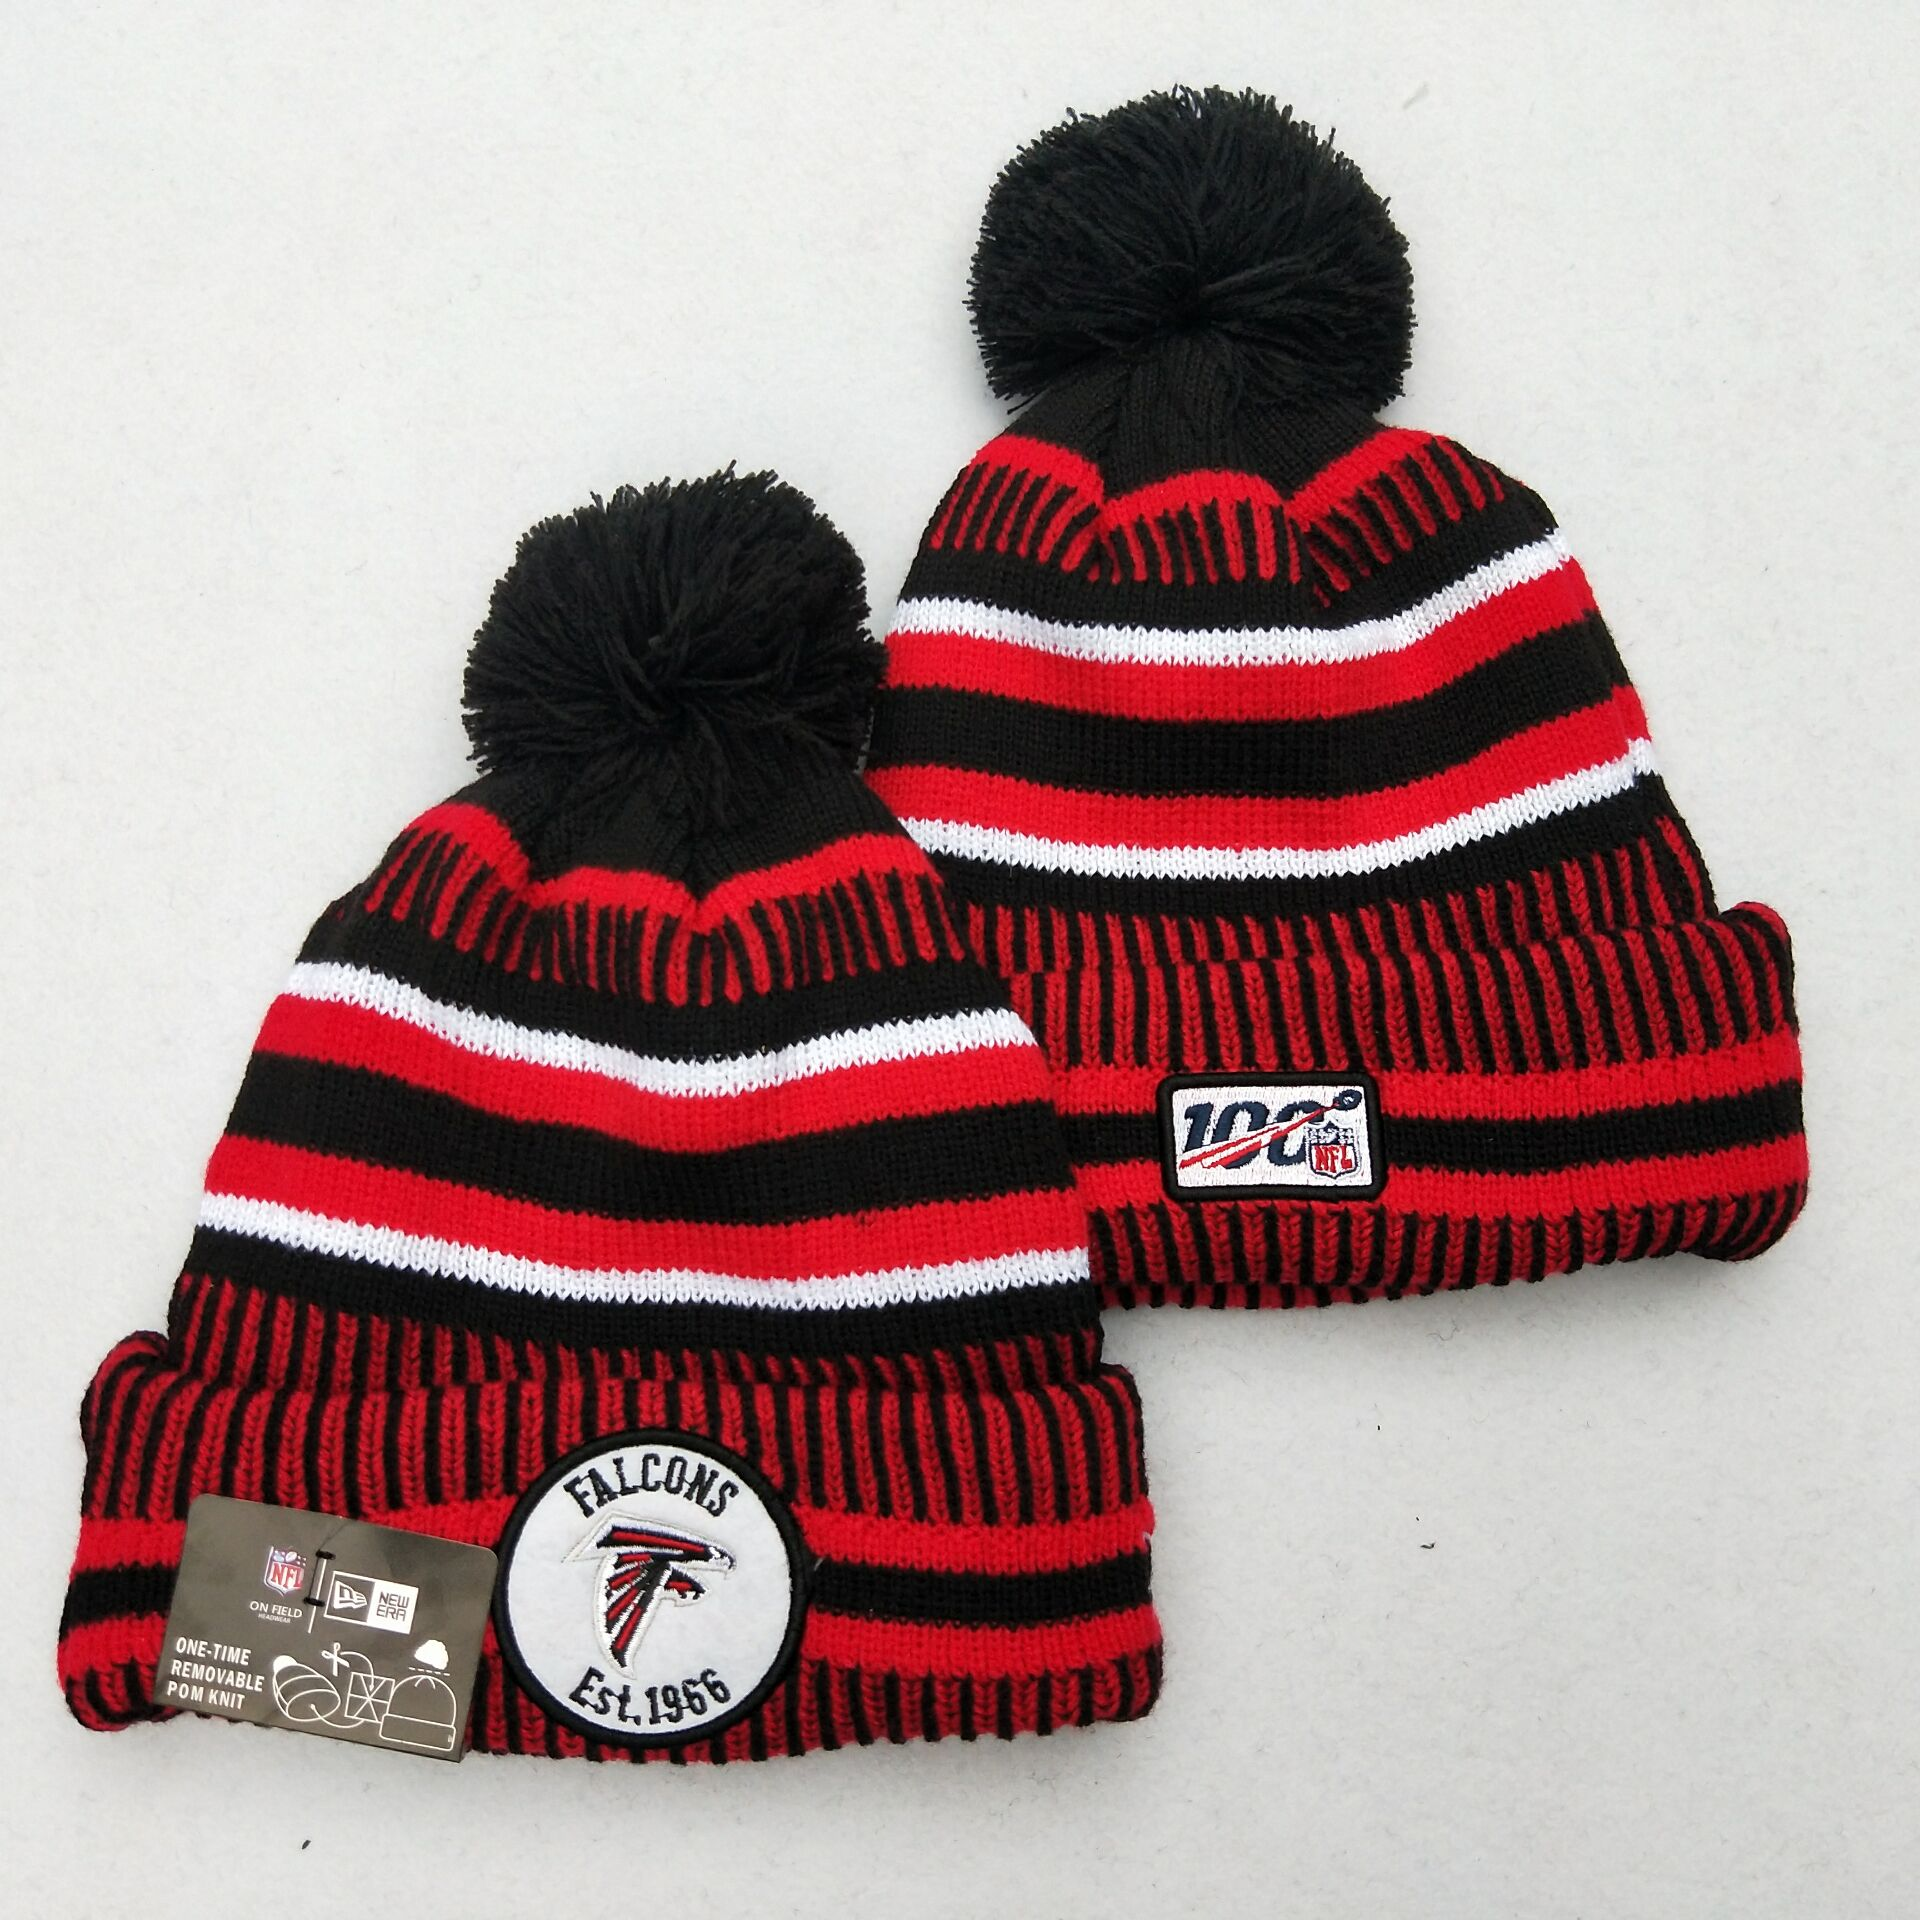 Falcons Team Logo Red 100th Season Pom Knit Hat YD